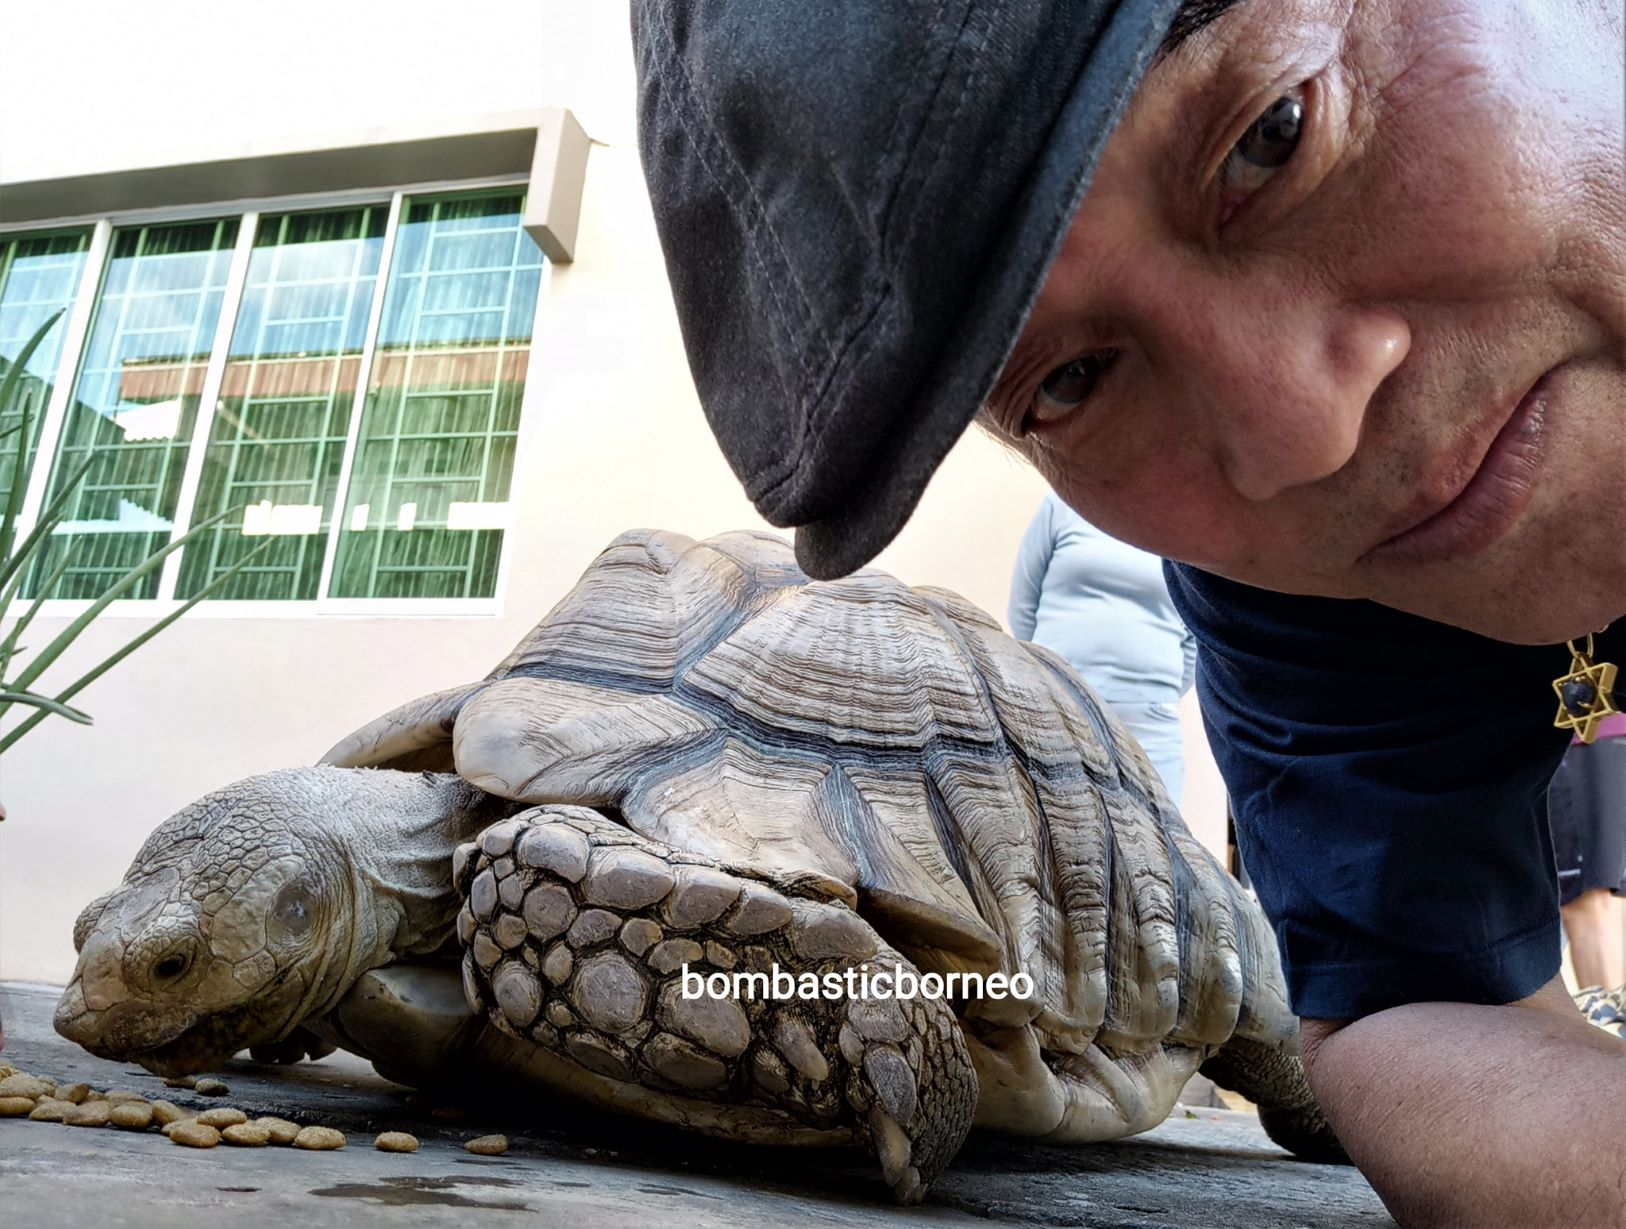 African spurred tortoise, Centrochelys sulcata, Sulcata tortoise, Exotic Animal, pets shop, hobby, Kho Animal Enterprise, Malaysia, Tourism, tourist attraction, travel guide, 马来西亚砂拉越, 异国宠物店嗜好, 古晋非洲盾臂龟,